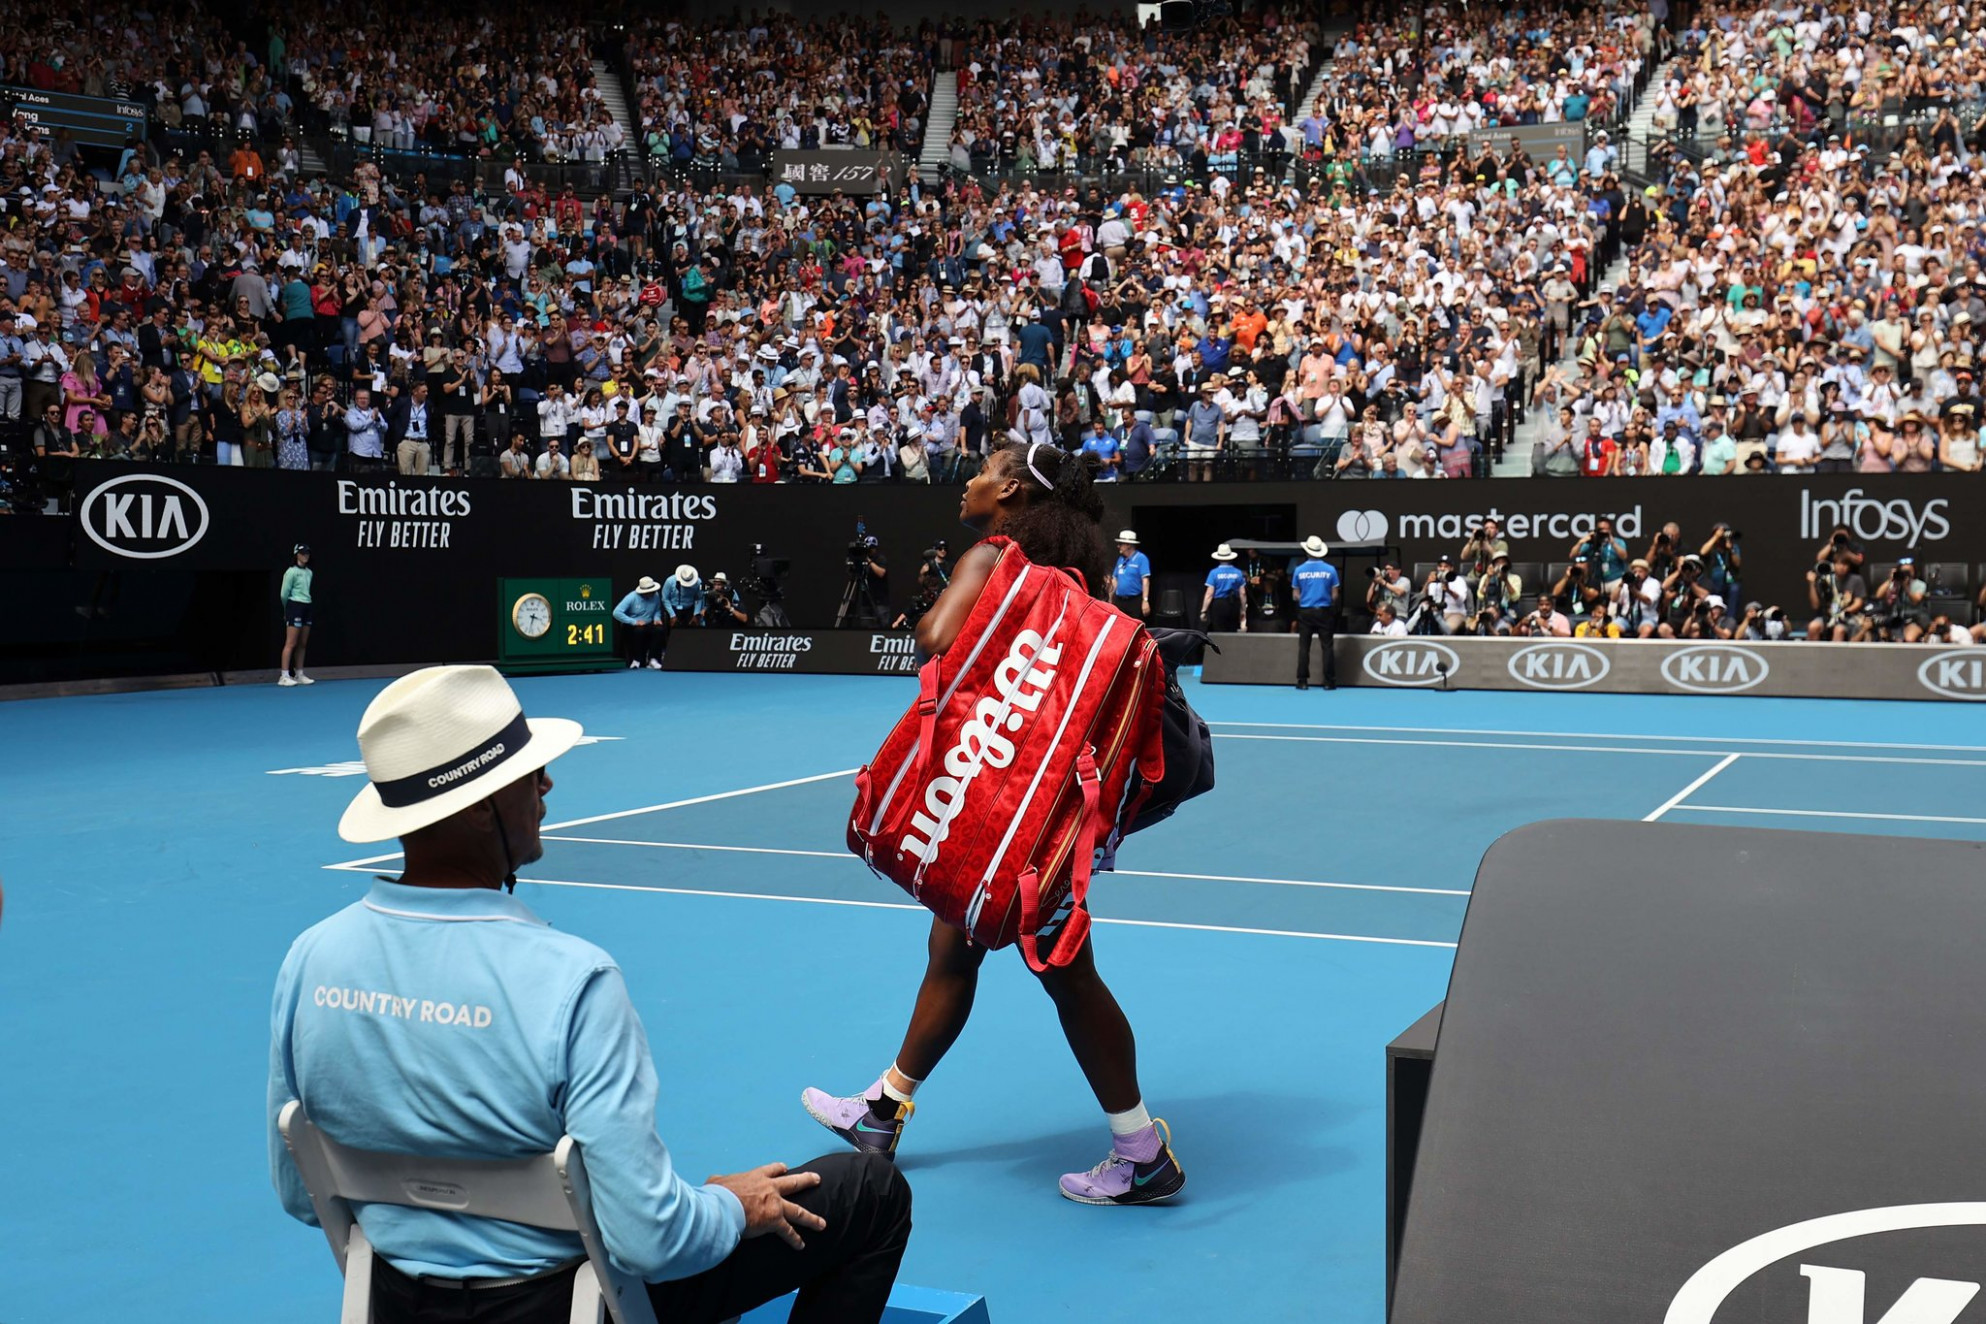 Round of Upsets at Australian Open as 8 of Top 8 Women's Seeds ...